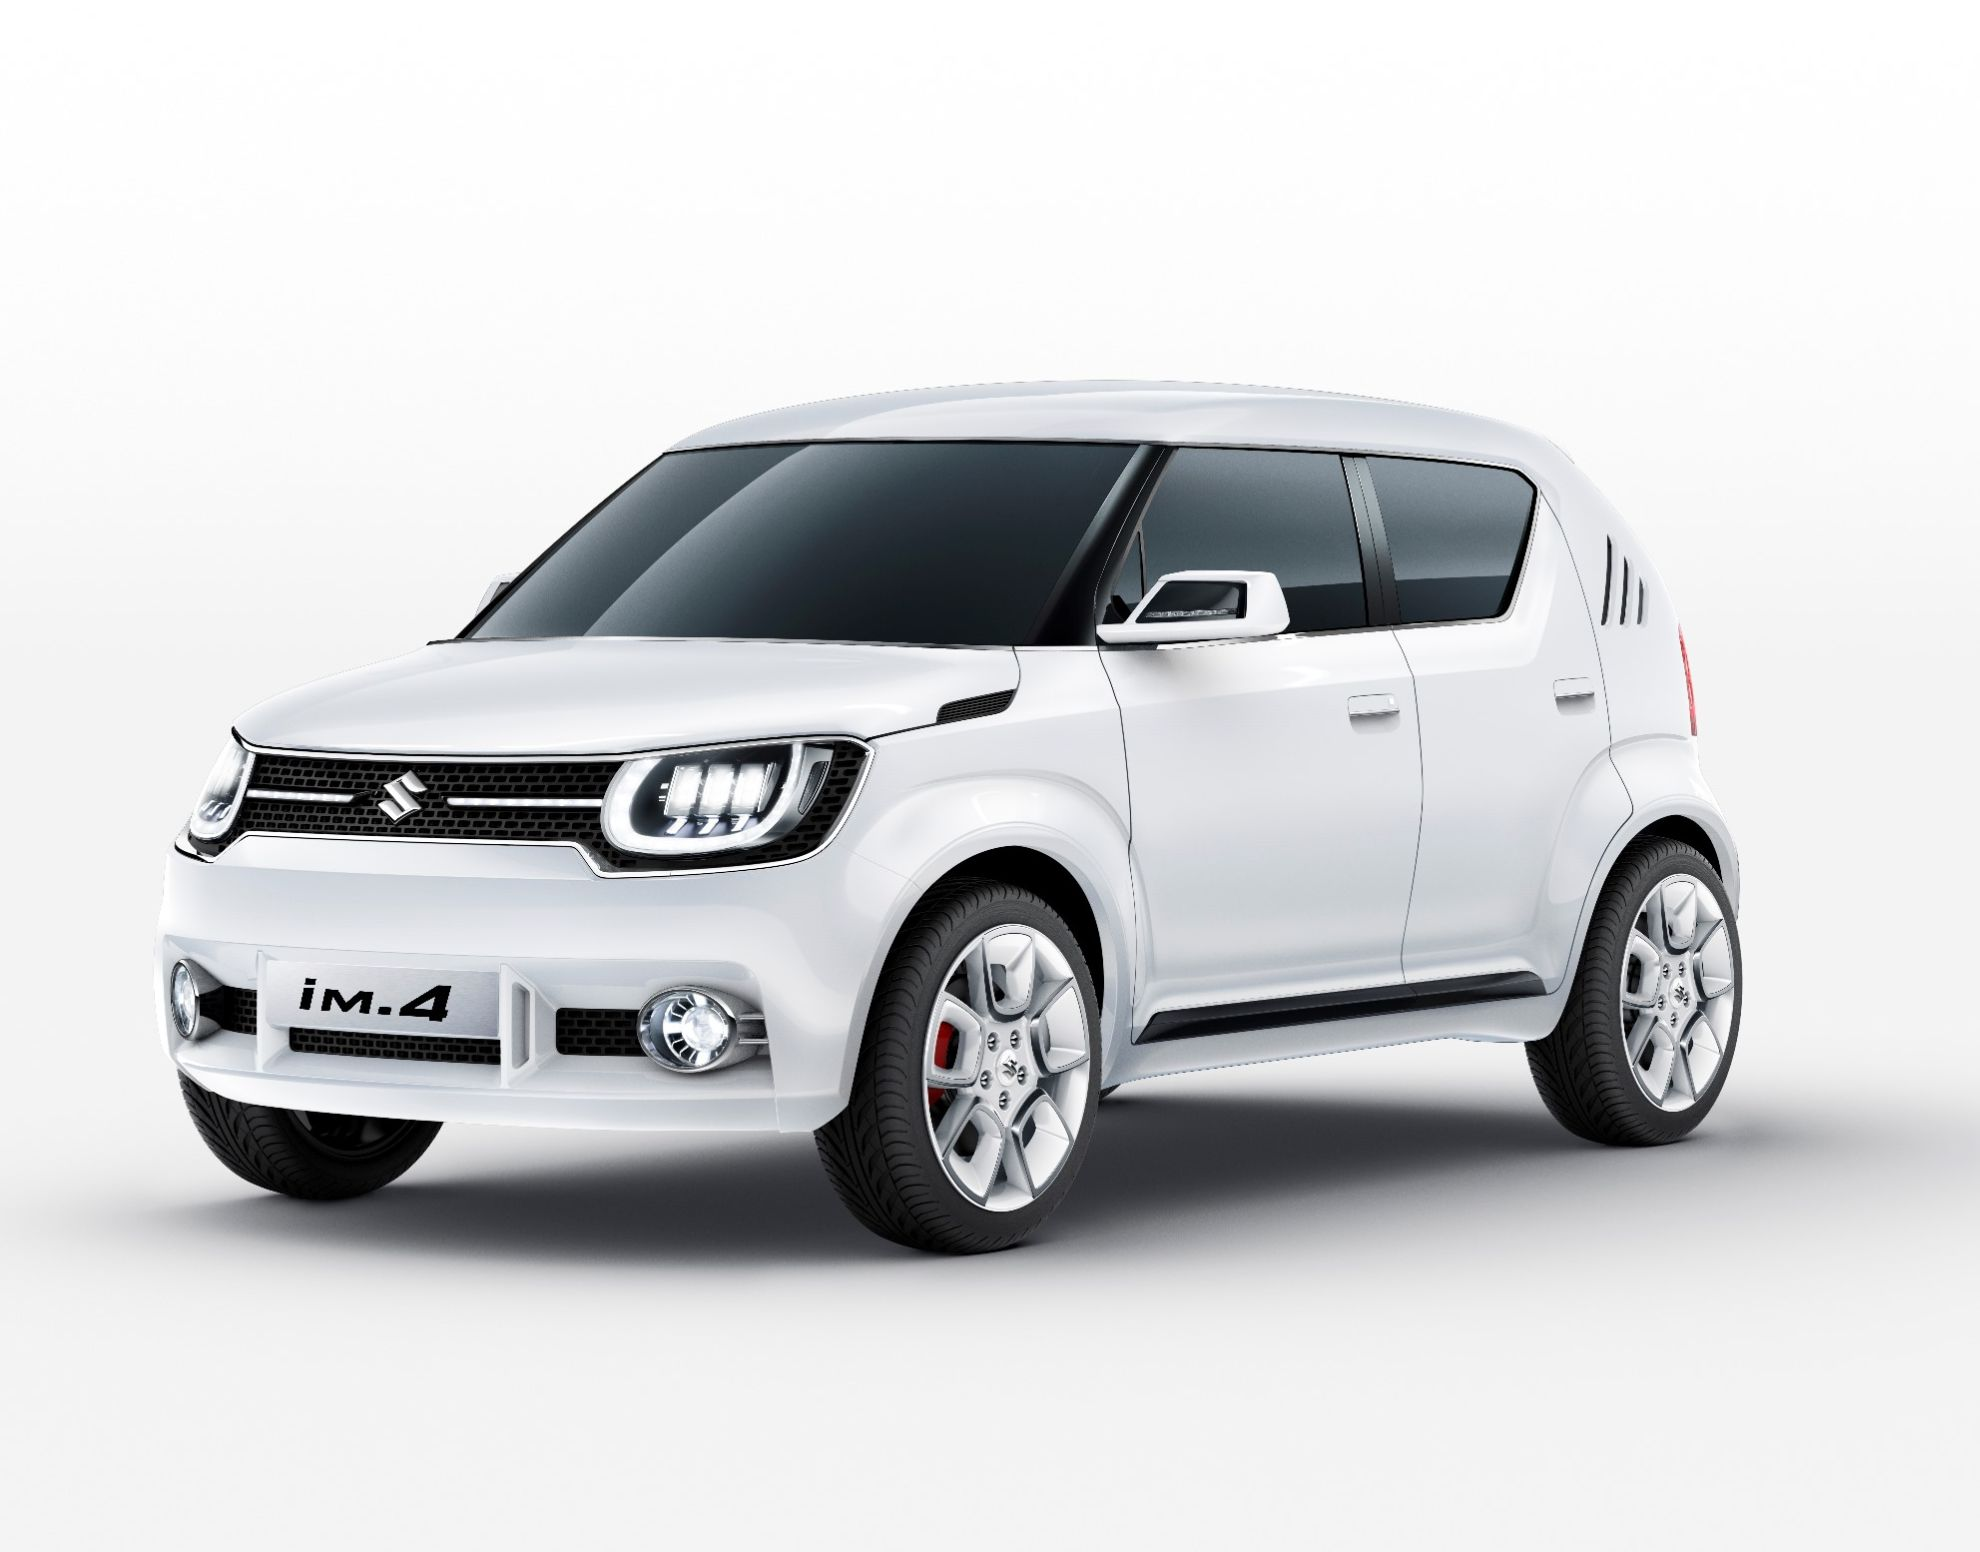 Suzuki-premieres-two-concepts-and-new-engine-in-China-im4